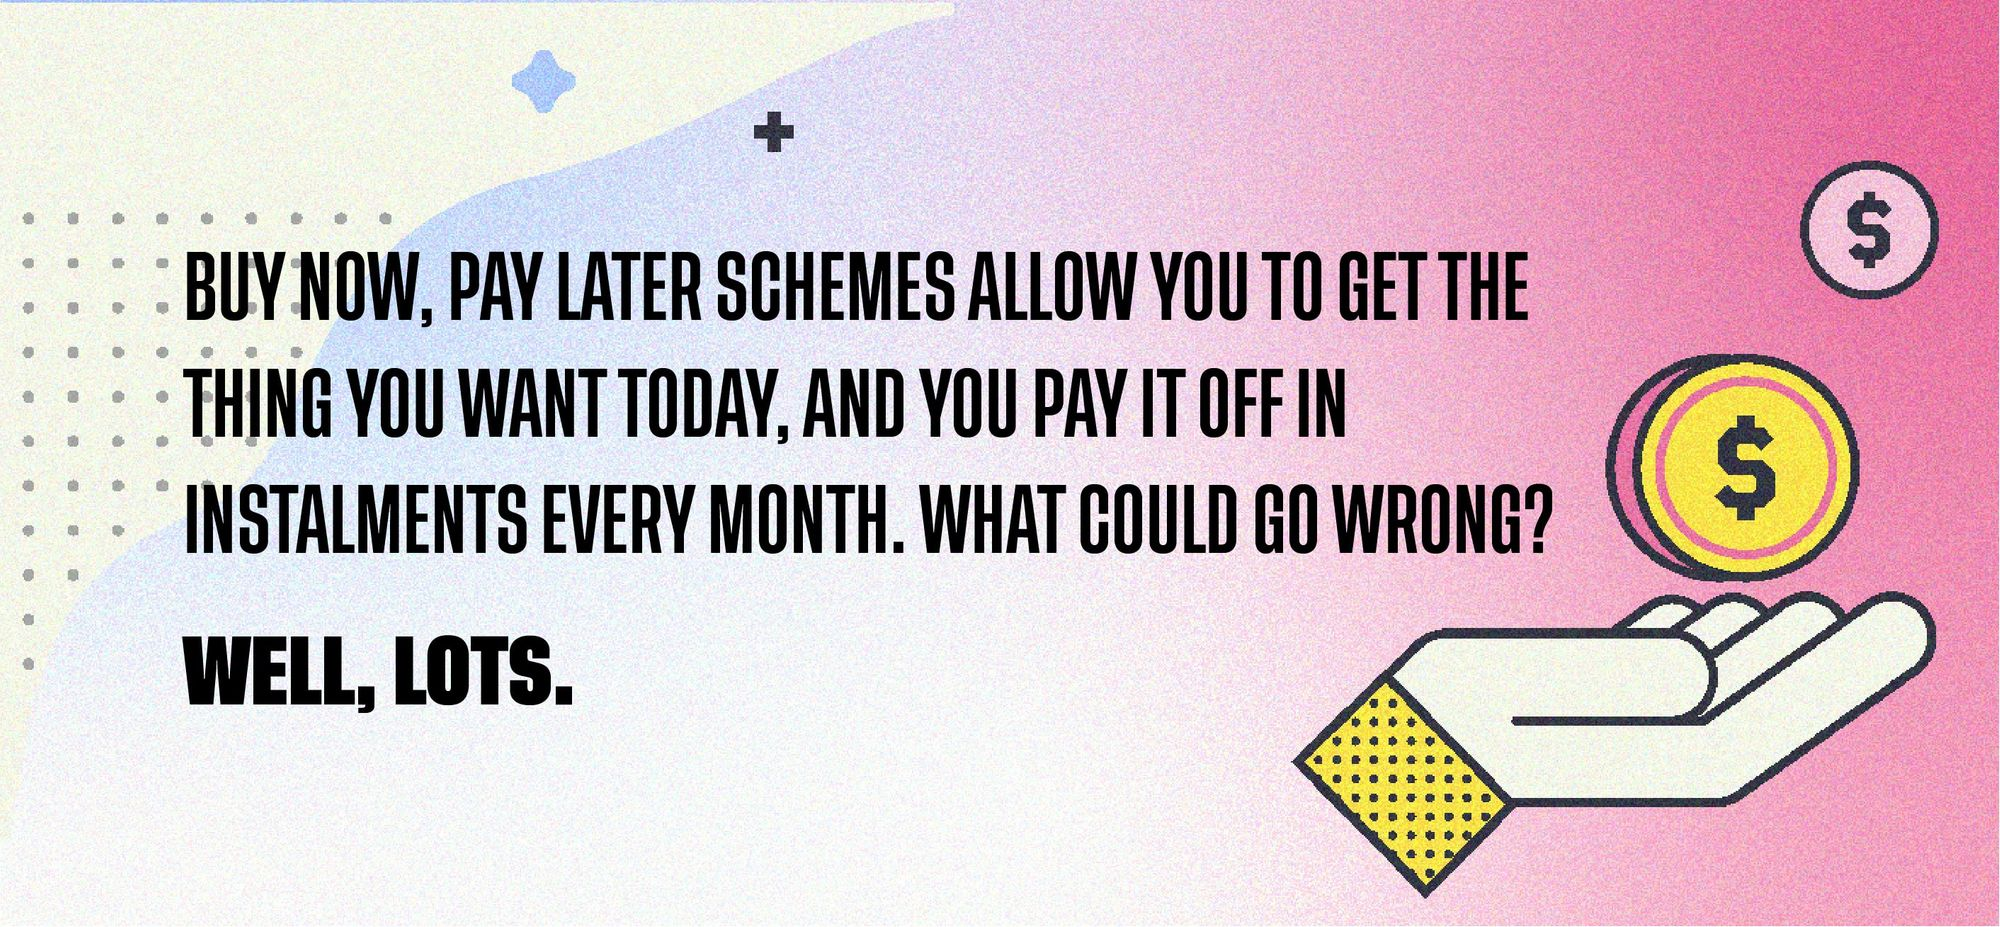 Buy now, pay later schemes allow you to get the thing you want today, and you pay it off in instalments every month. What could go wrong? Well, lots.